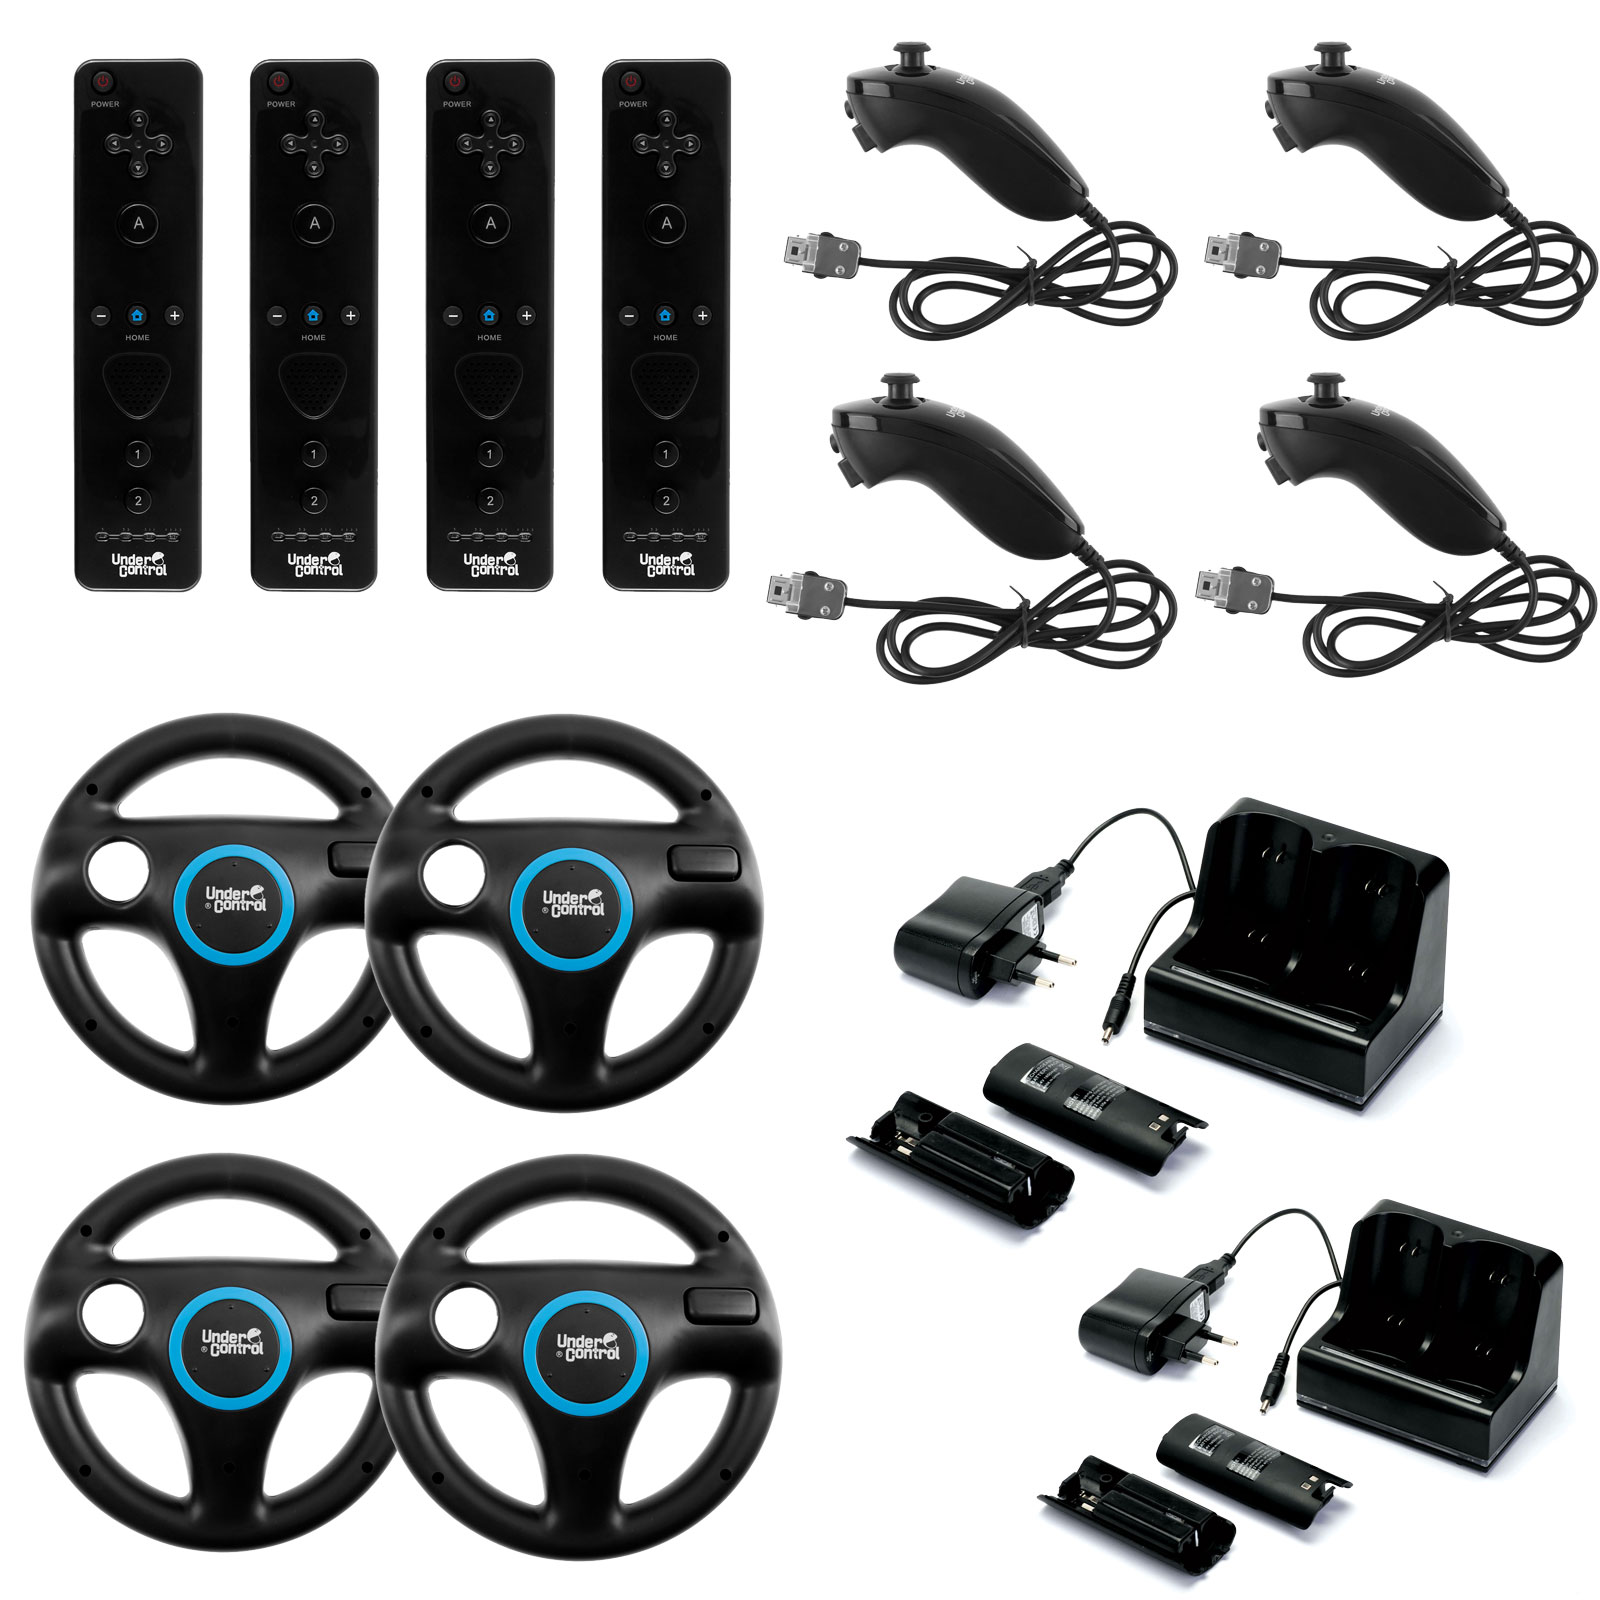 Under Control Wii/Wii U Family Kit (coloris noir) Pack familial complet  avec 4 ii Motion Controller, 4 ii Chuck, 4 Steering Wheel et 2 Charge  Station